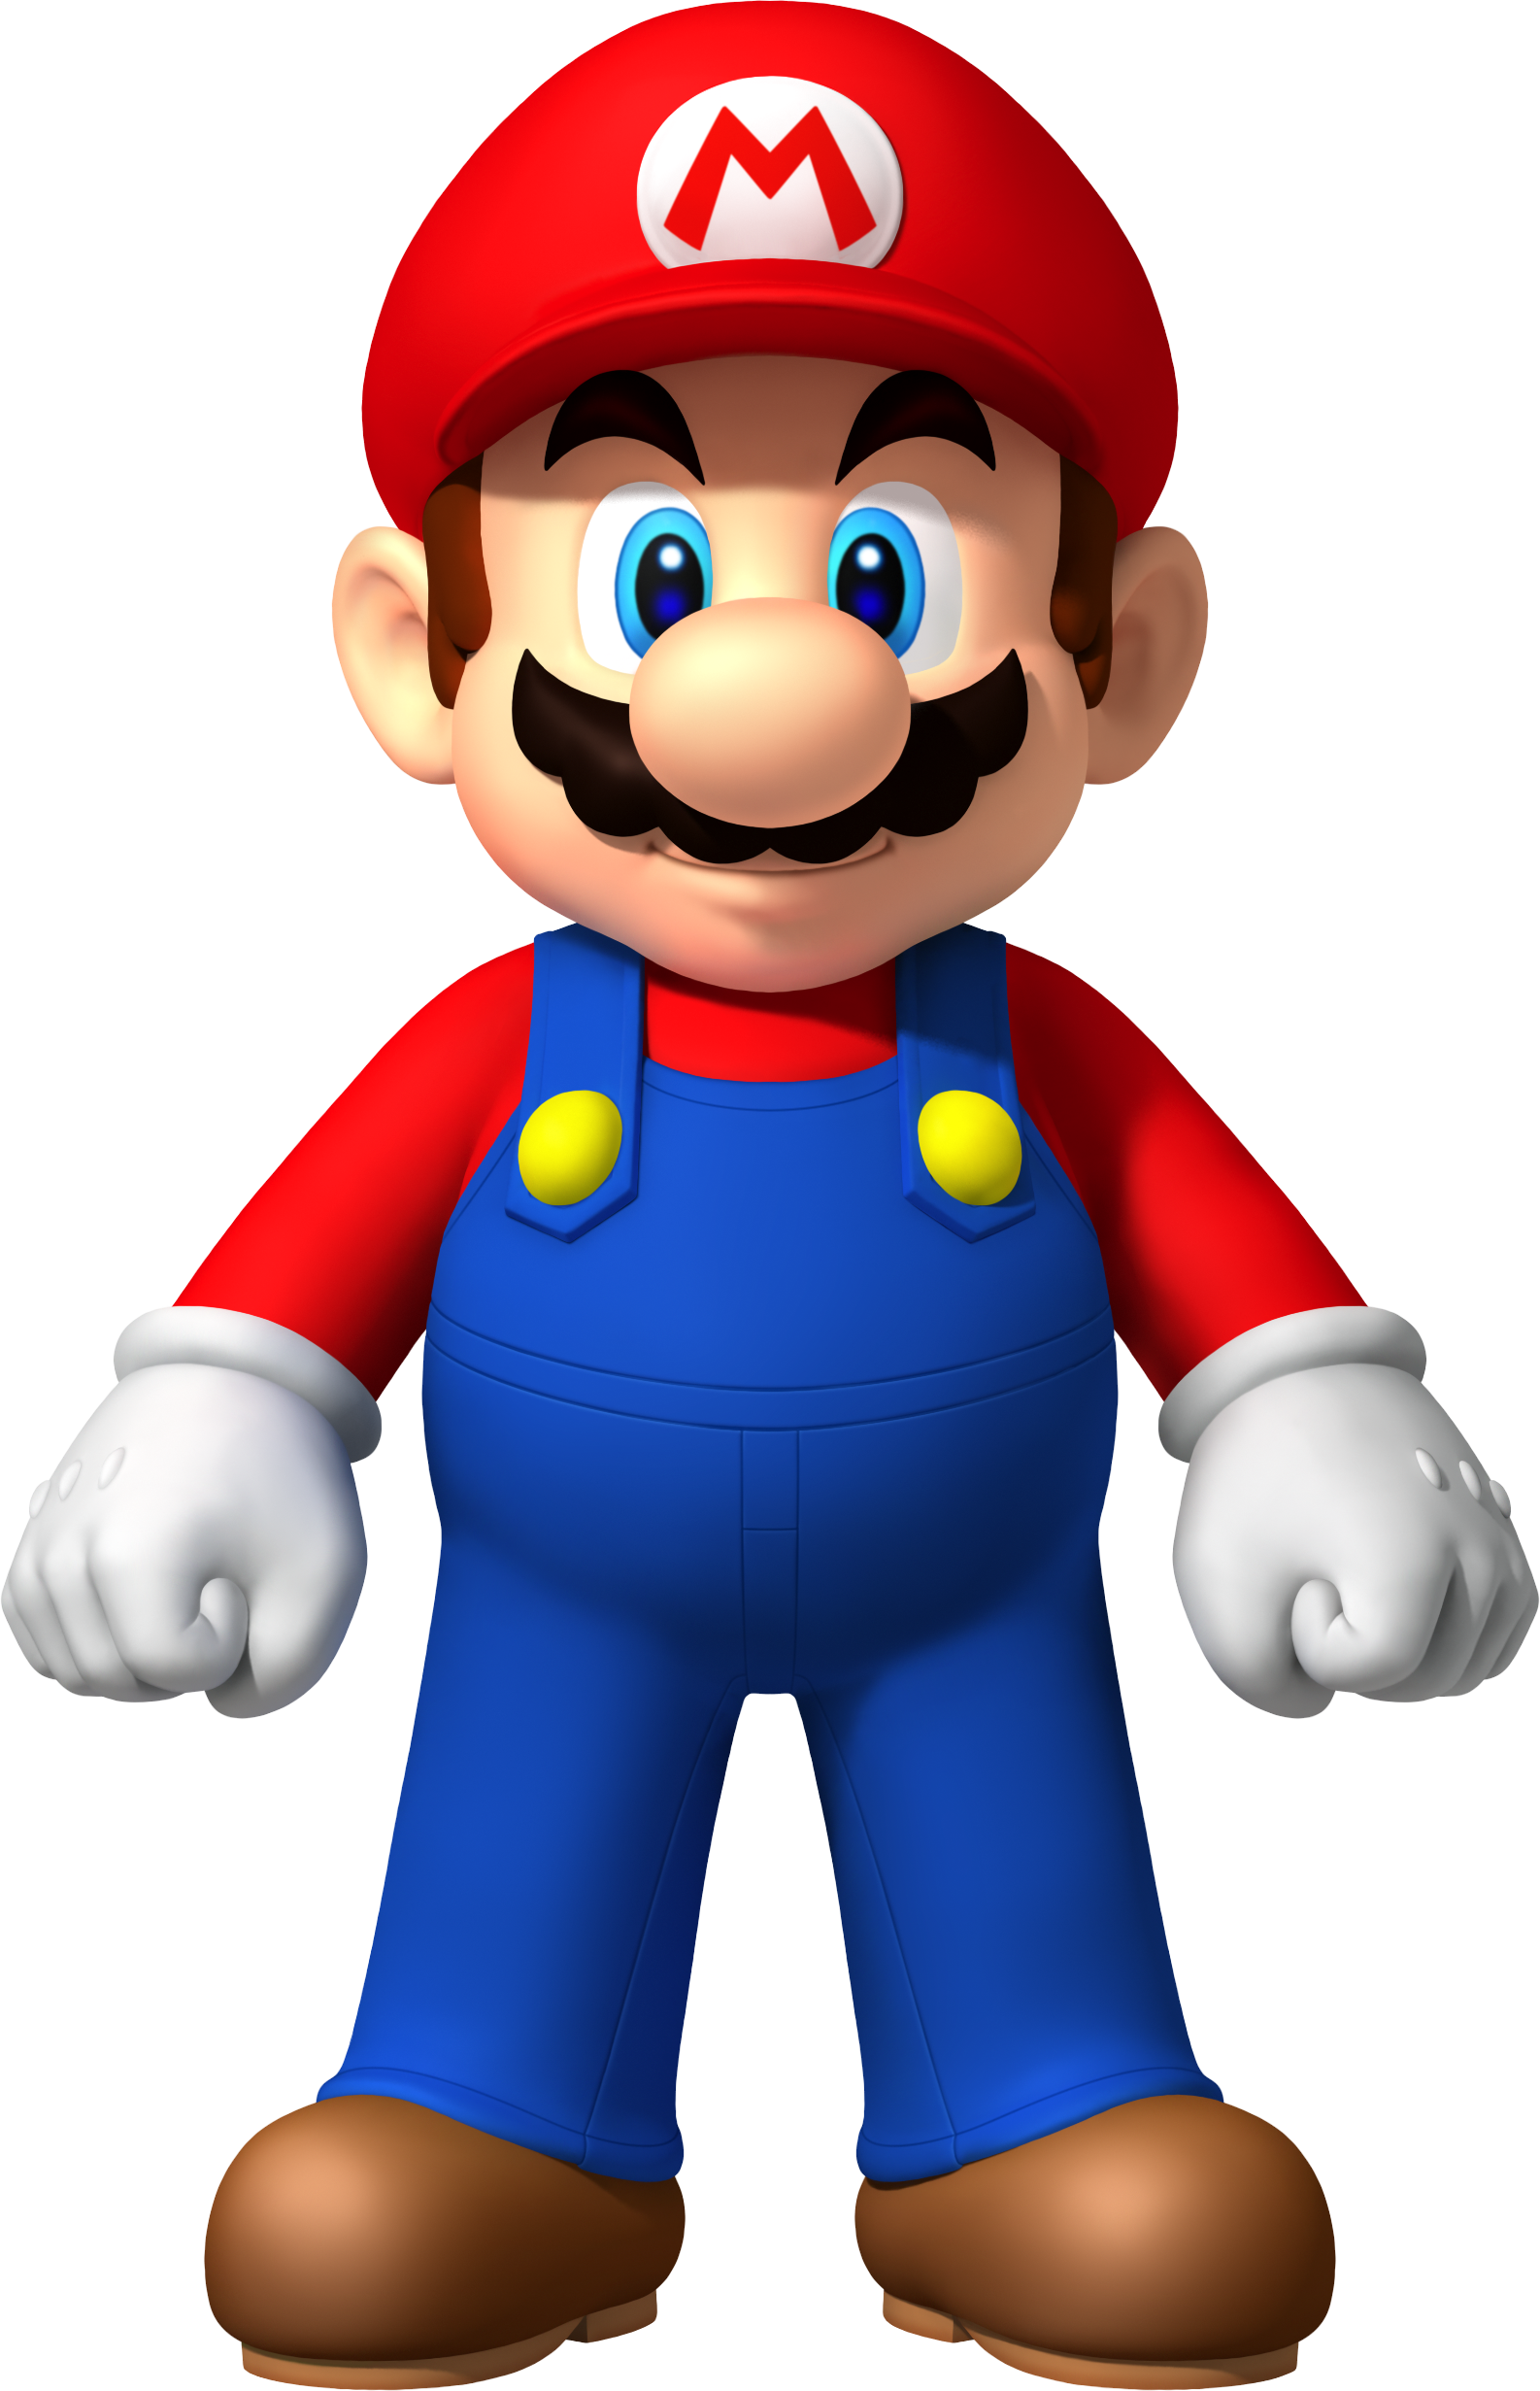 Big-Mario-super-mario-bros-32